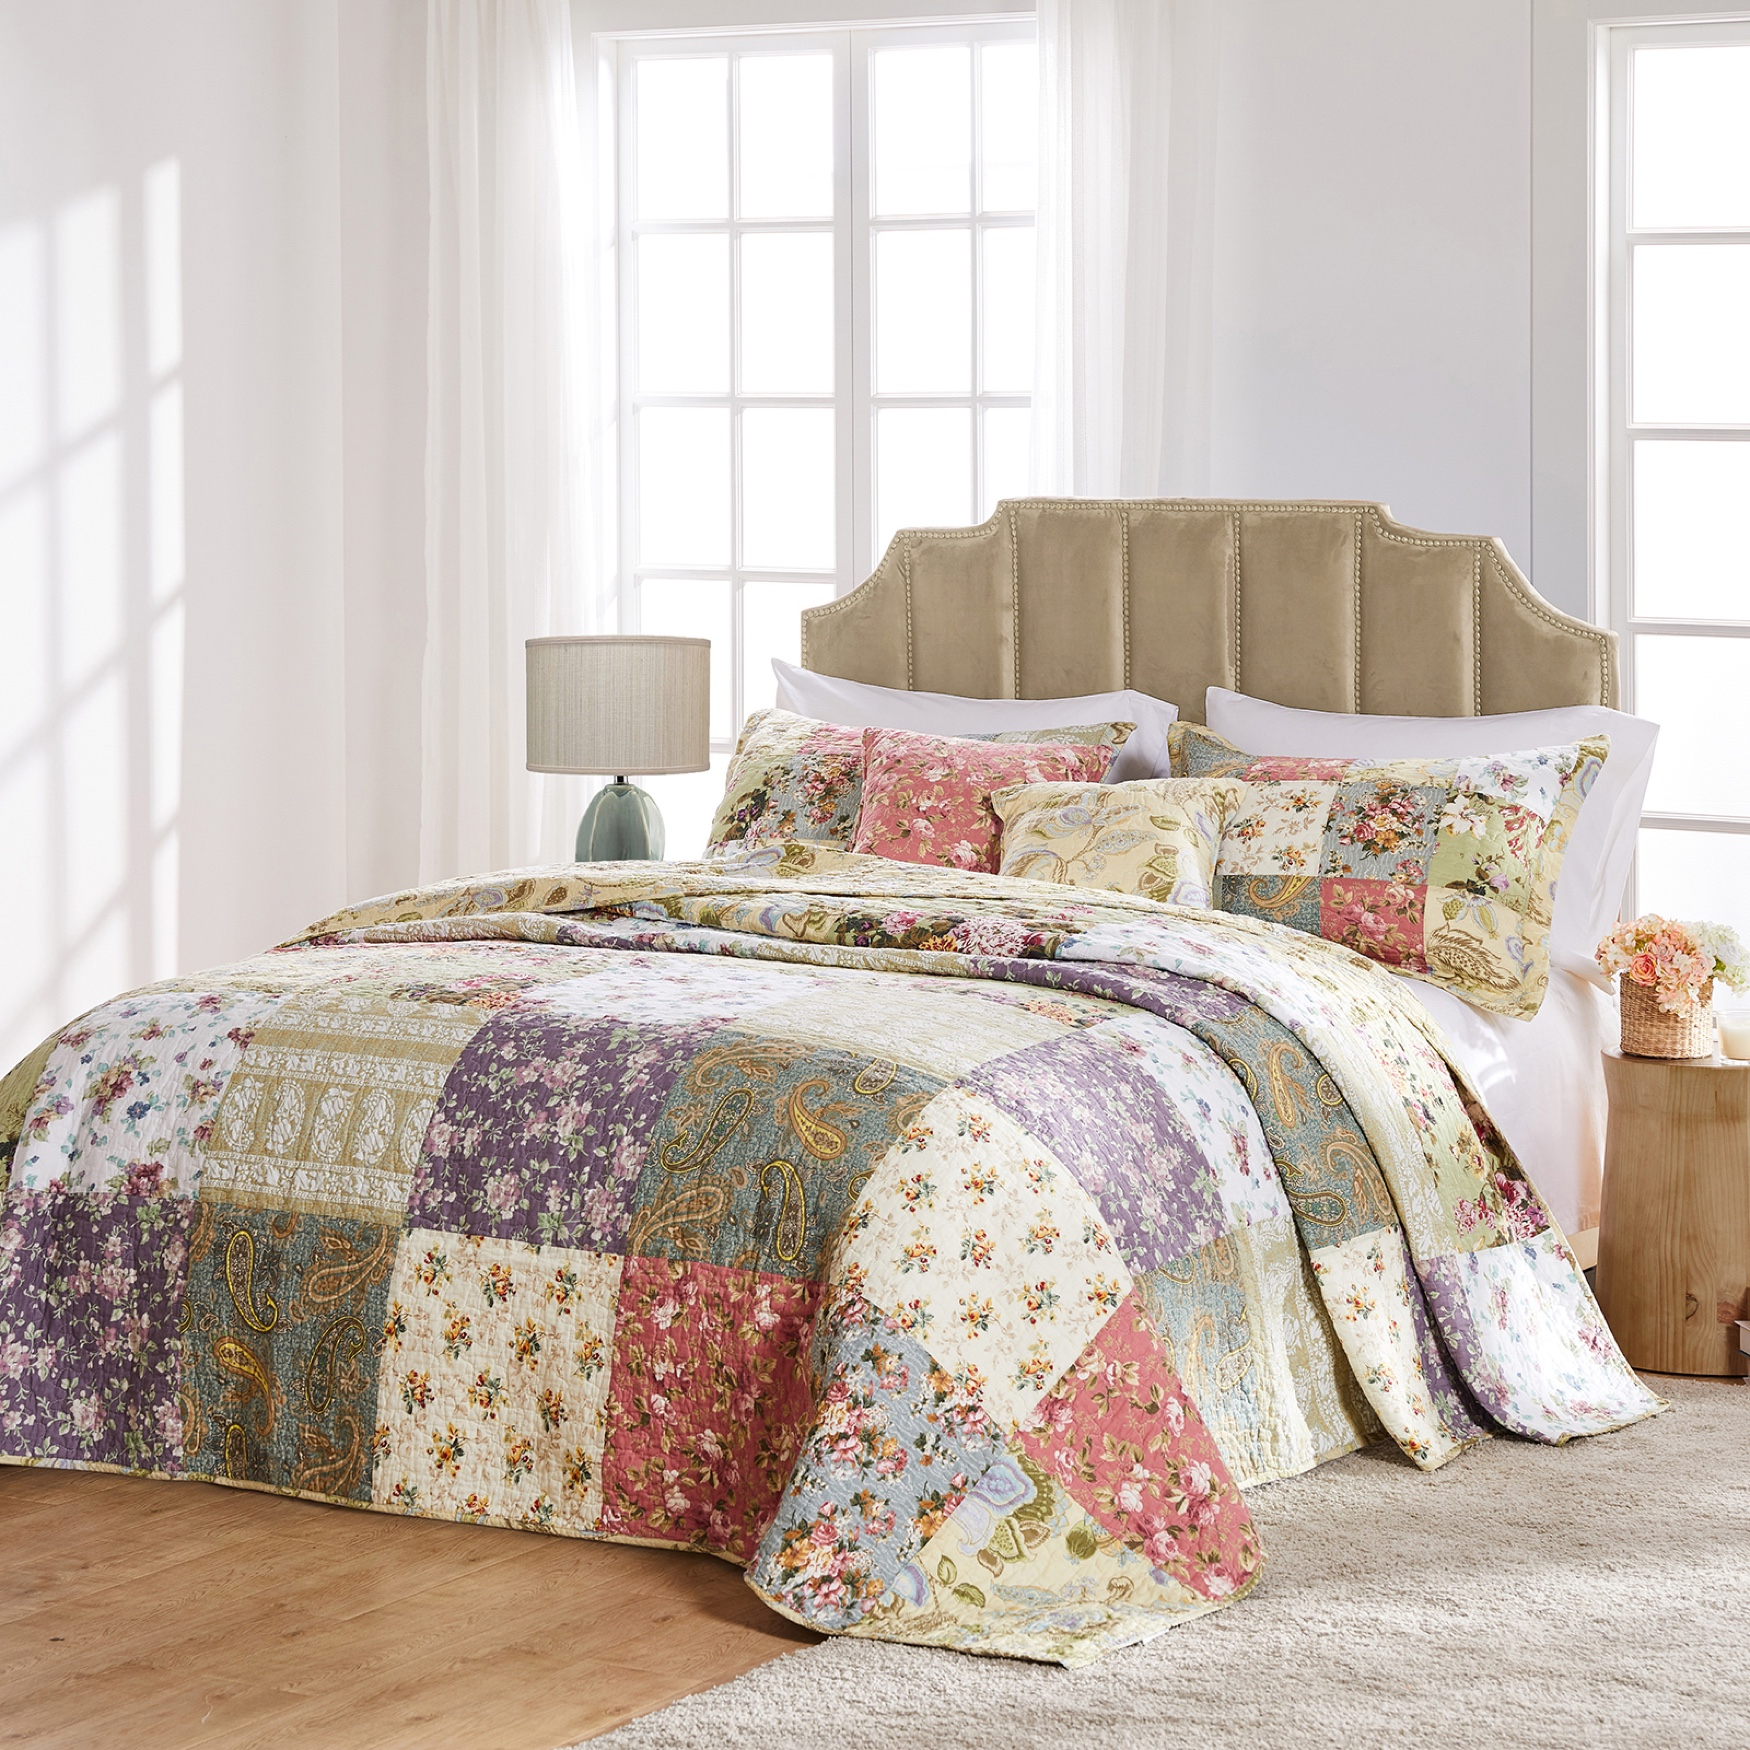 Blooming Prairie Bedspread Set by Greenland Home Fashions,